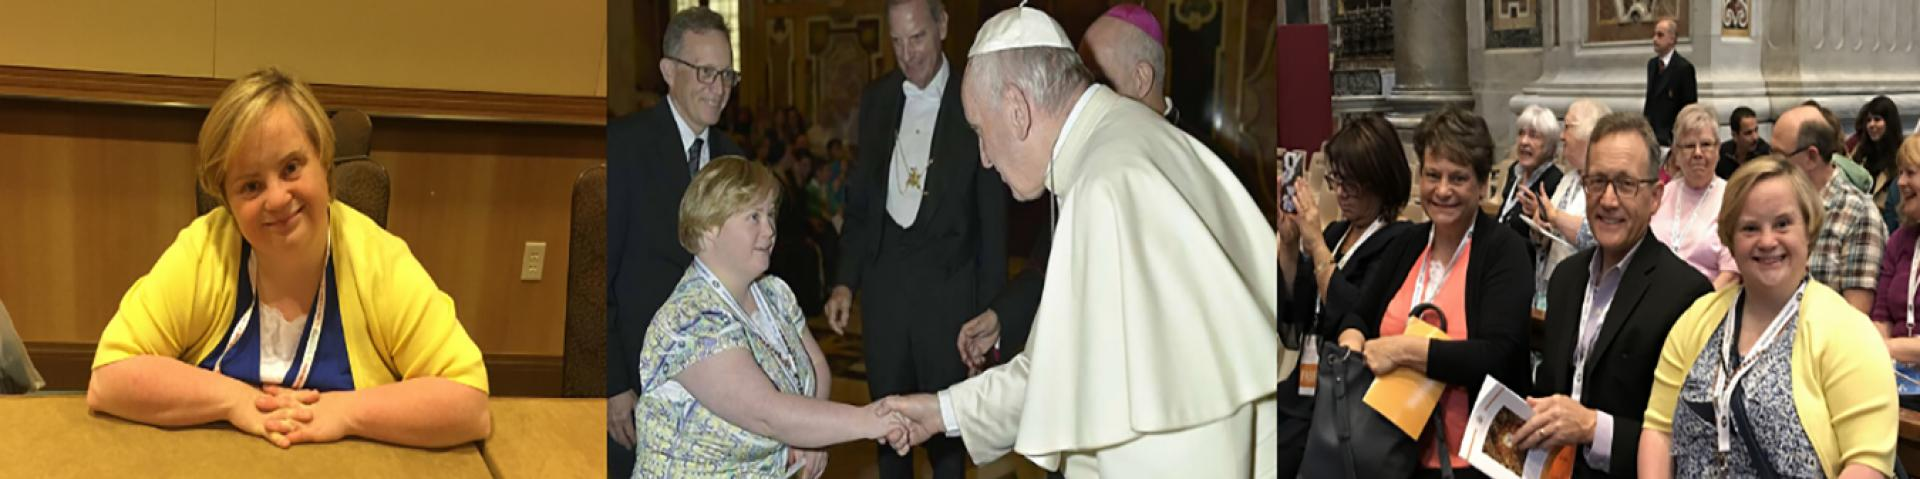 Bridget Brown with Pope Francis